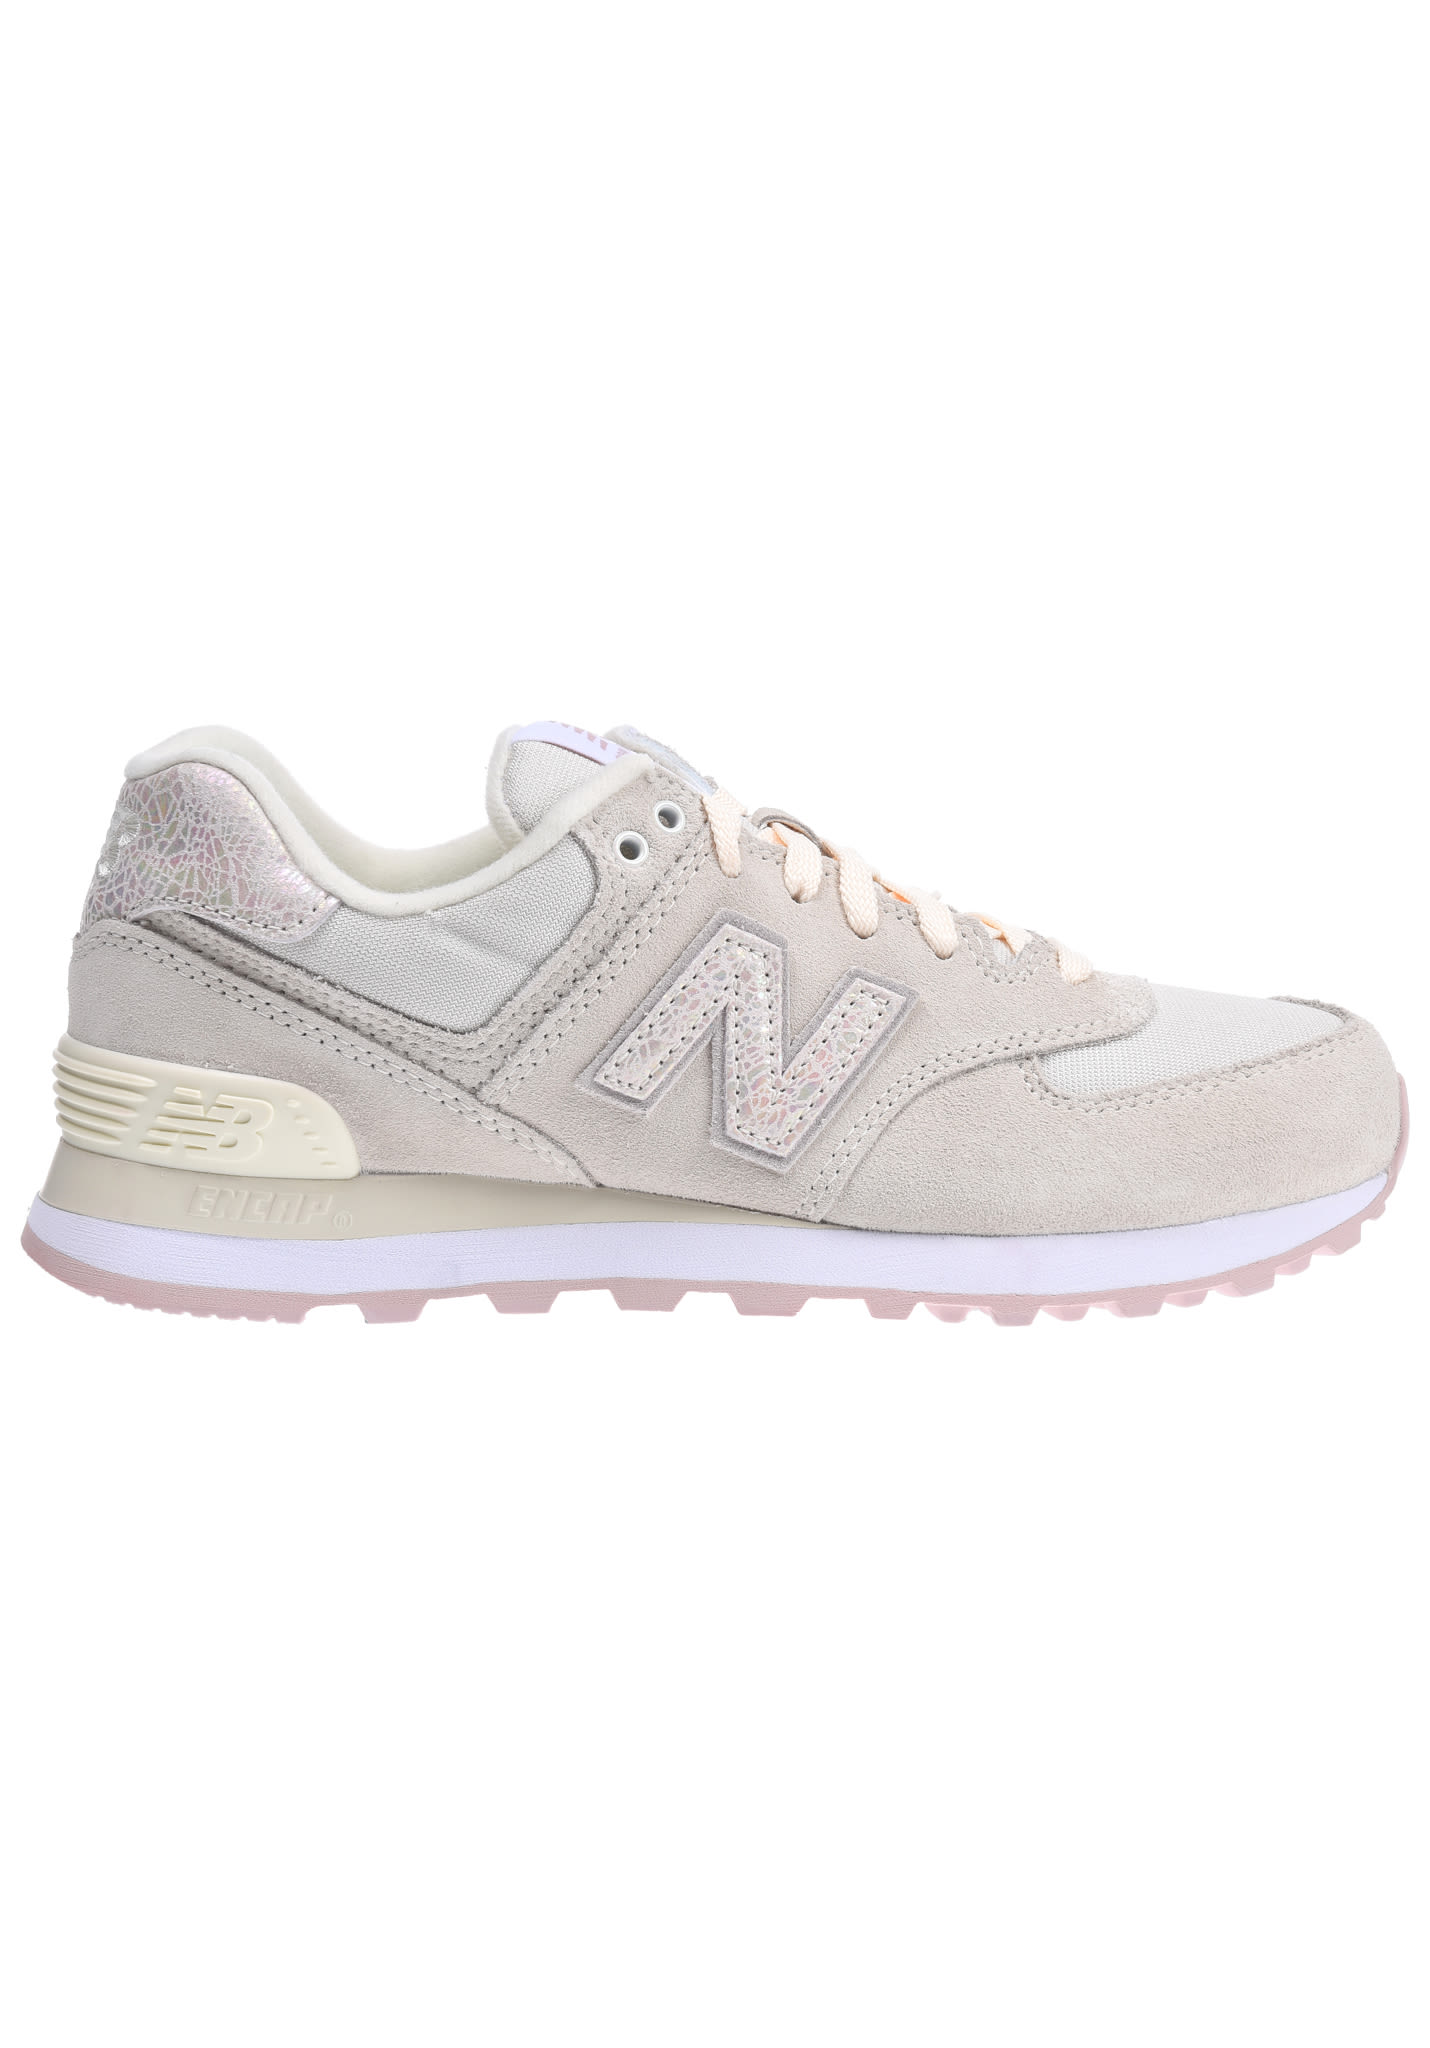 the best attitude c161f d9140 NEW BALANCE WL574 B - Sneakers for Women - Beige - Planet Sports